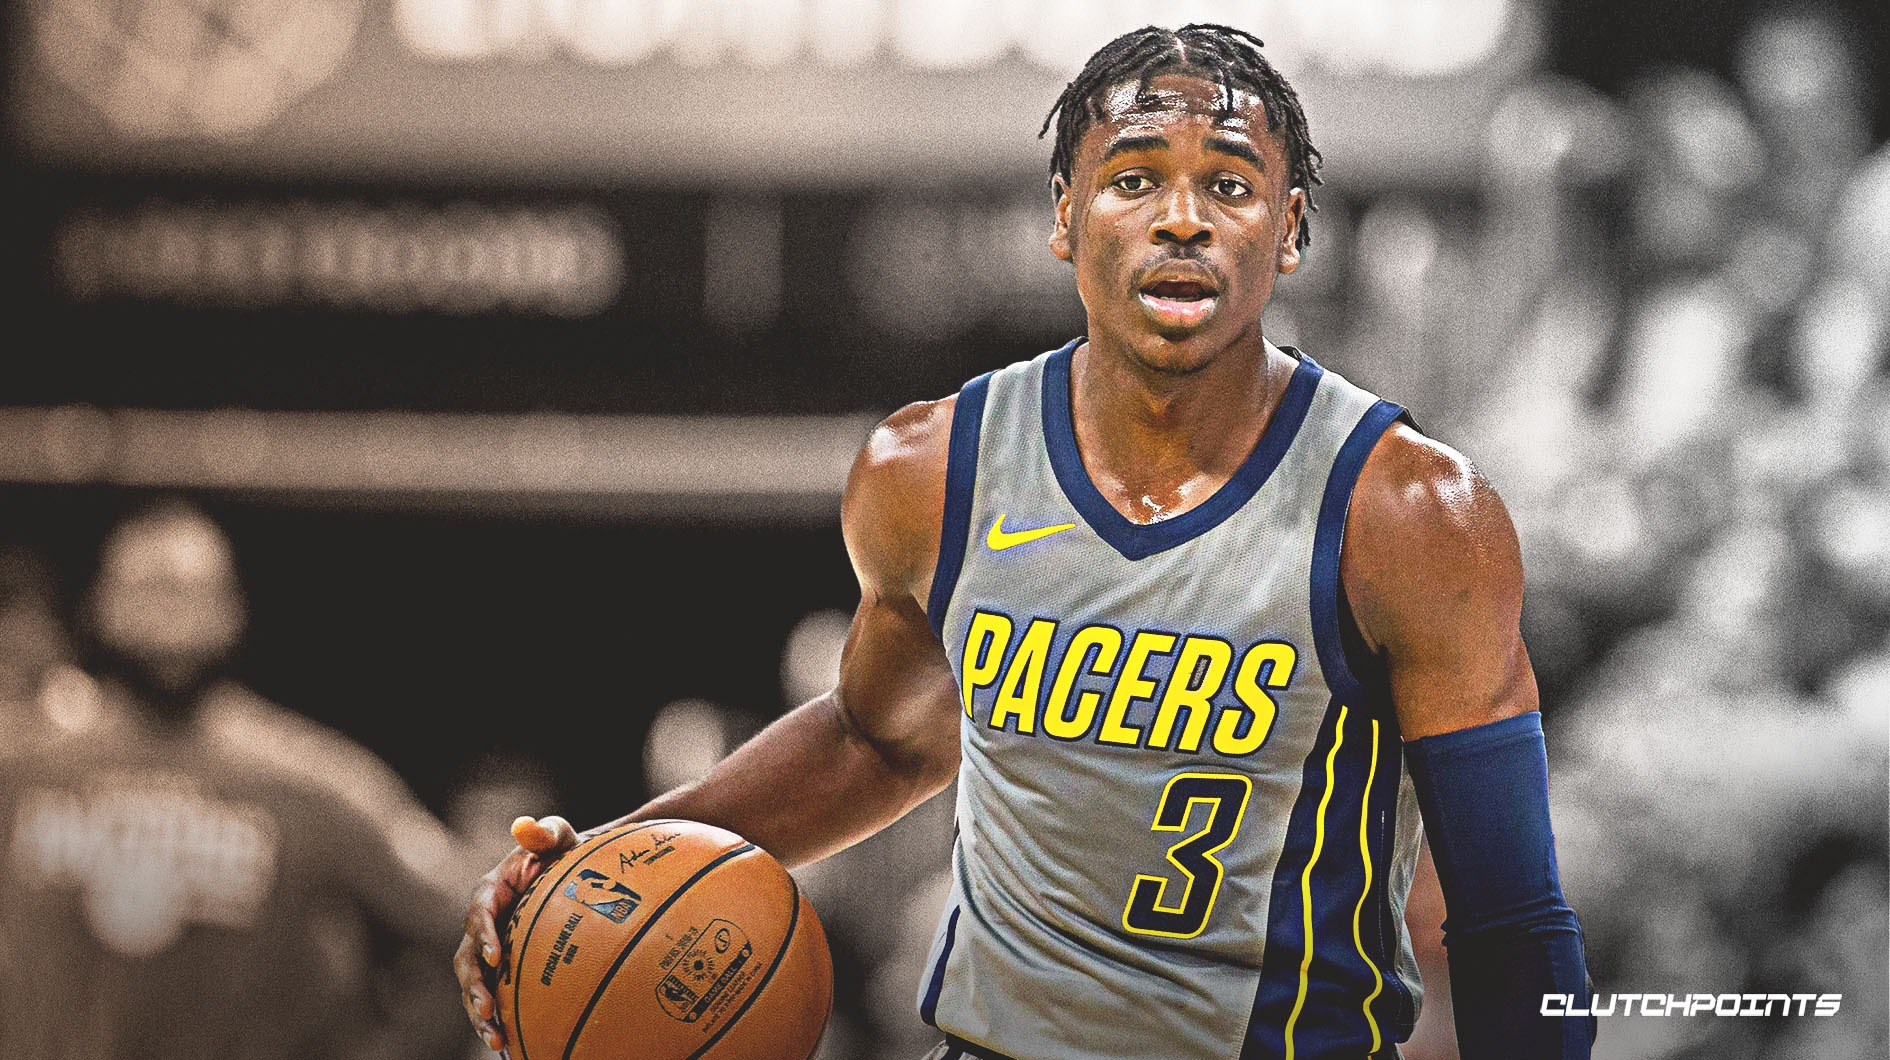 Holiday con i Pacers